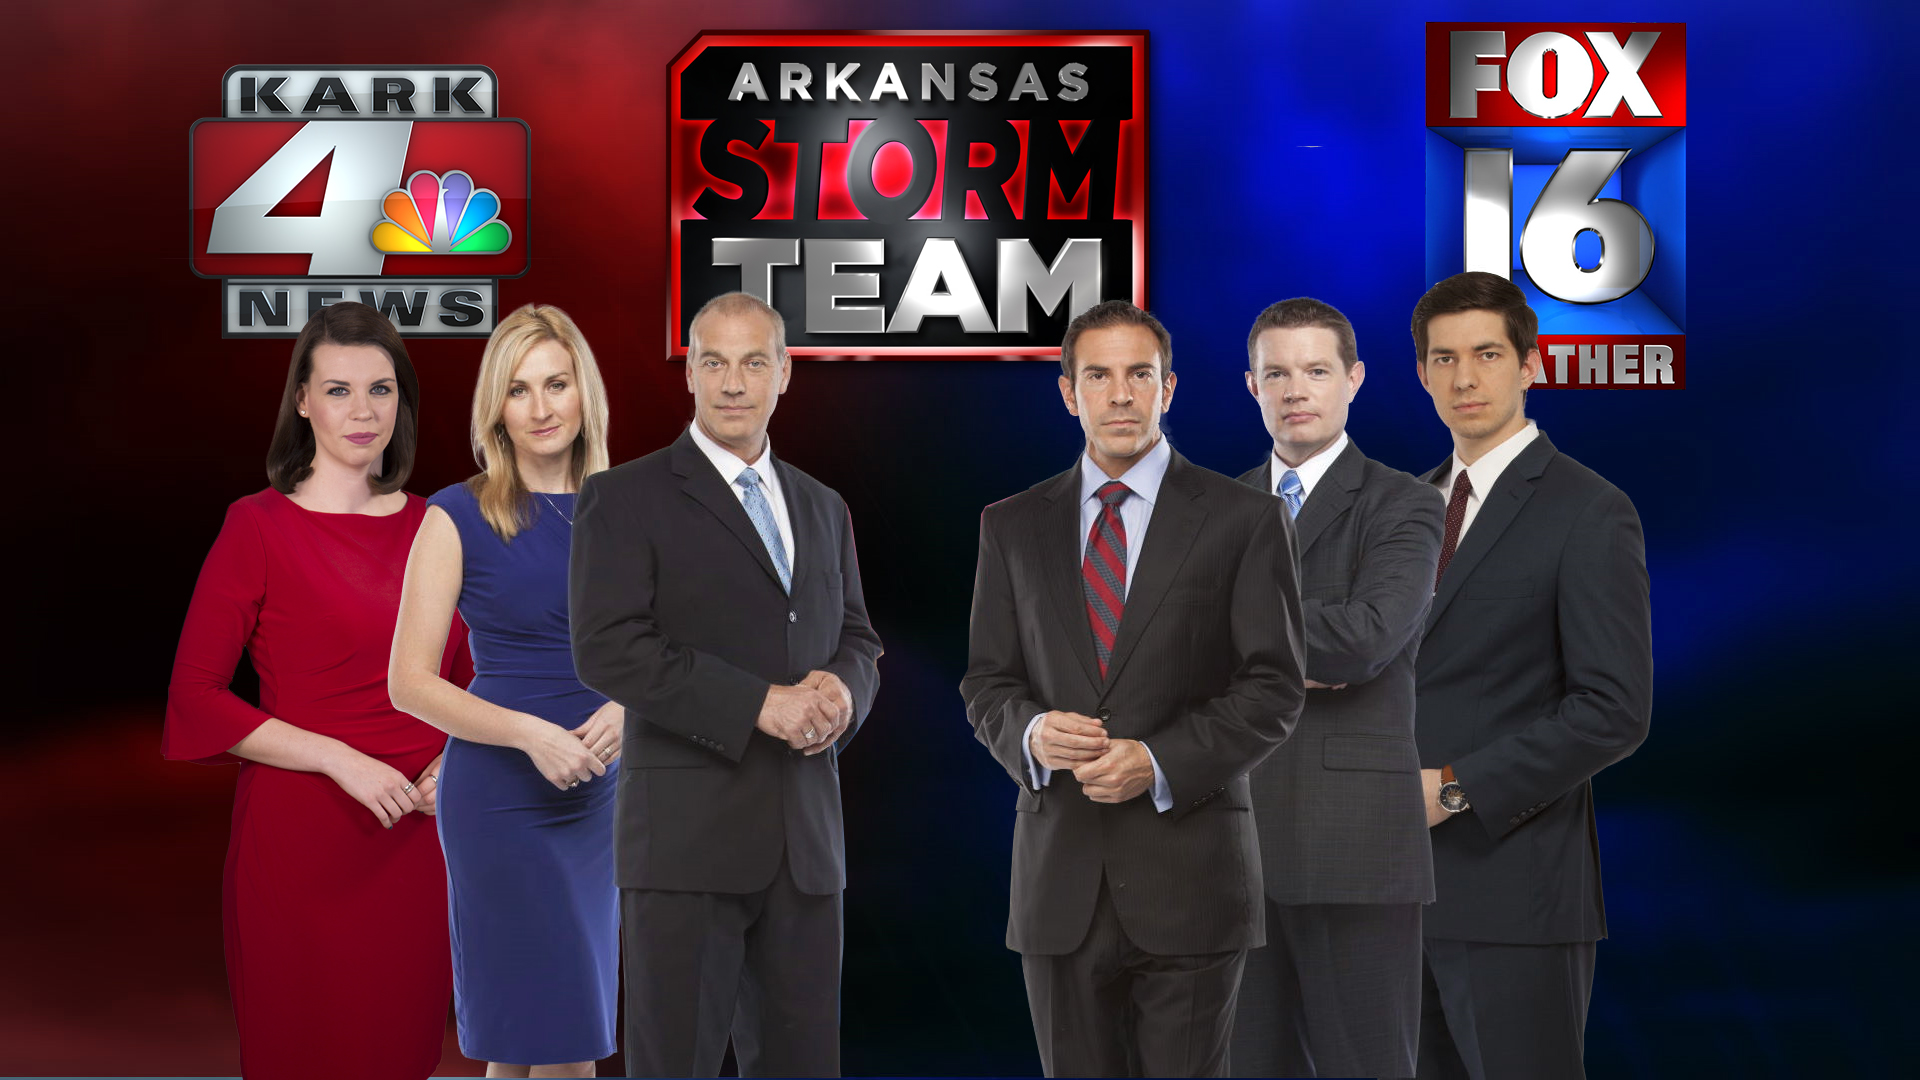 Arkansas Storm Team April 2019__NEW NEW 1554916606013.jpg-118809318-118809318.jpg